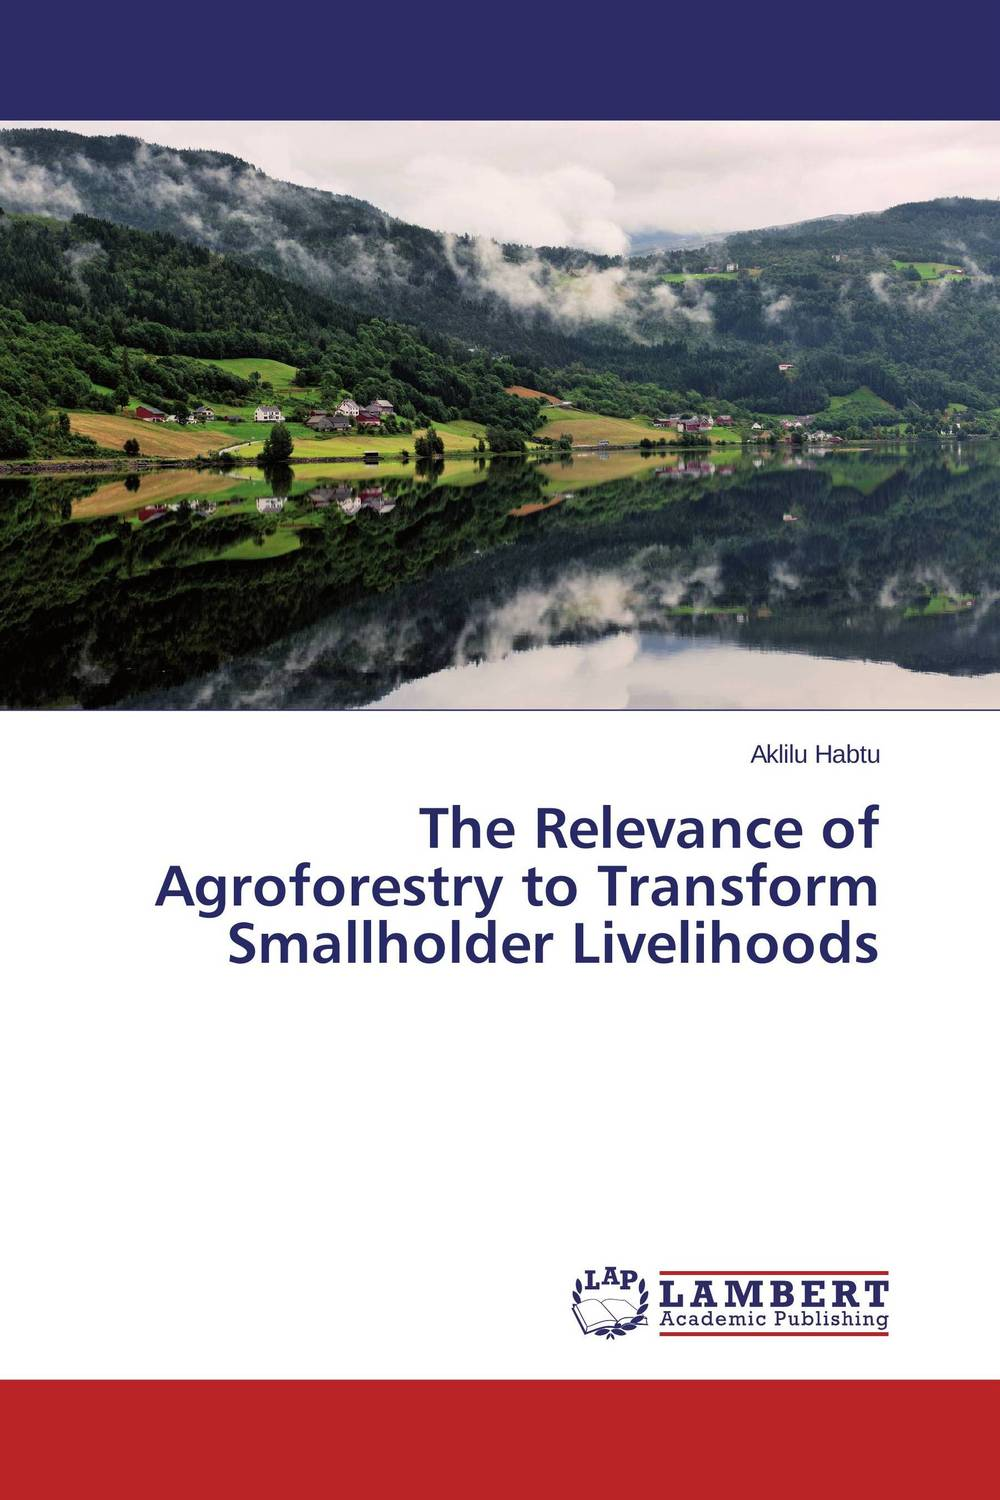 The Relevance of Agroforestry to Transform Smallholder Livelihoods role of women in agroforestry practices management